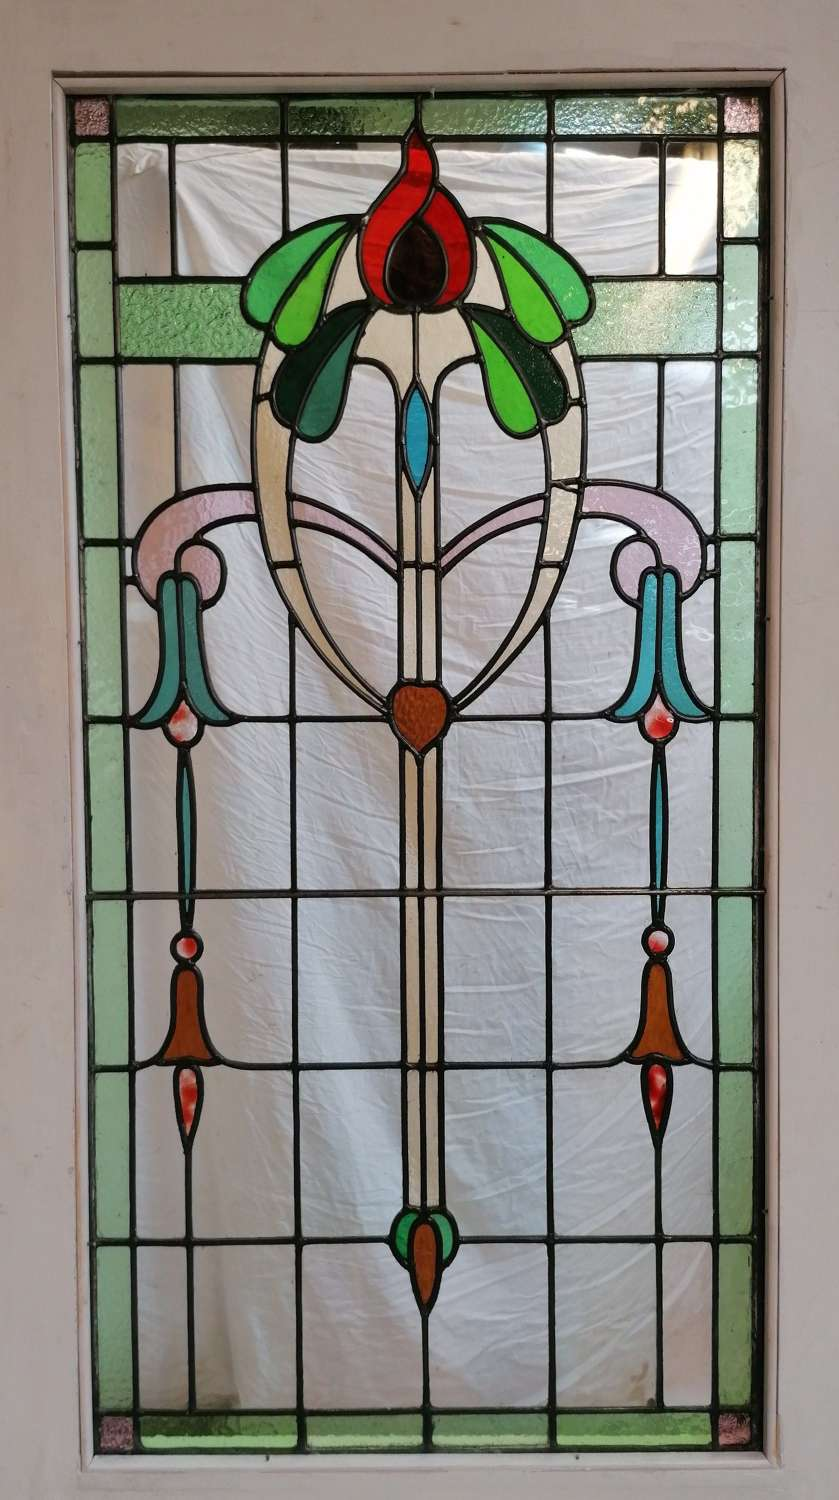 DB0680 EDWARDIAN PITCH PINE DOOR WITH ART NOUVEAU STAINED GLASS